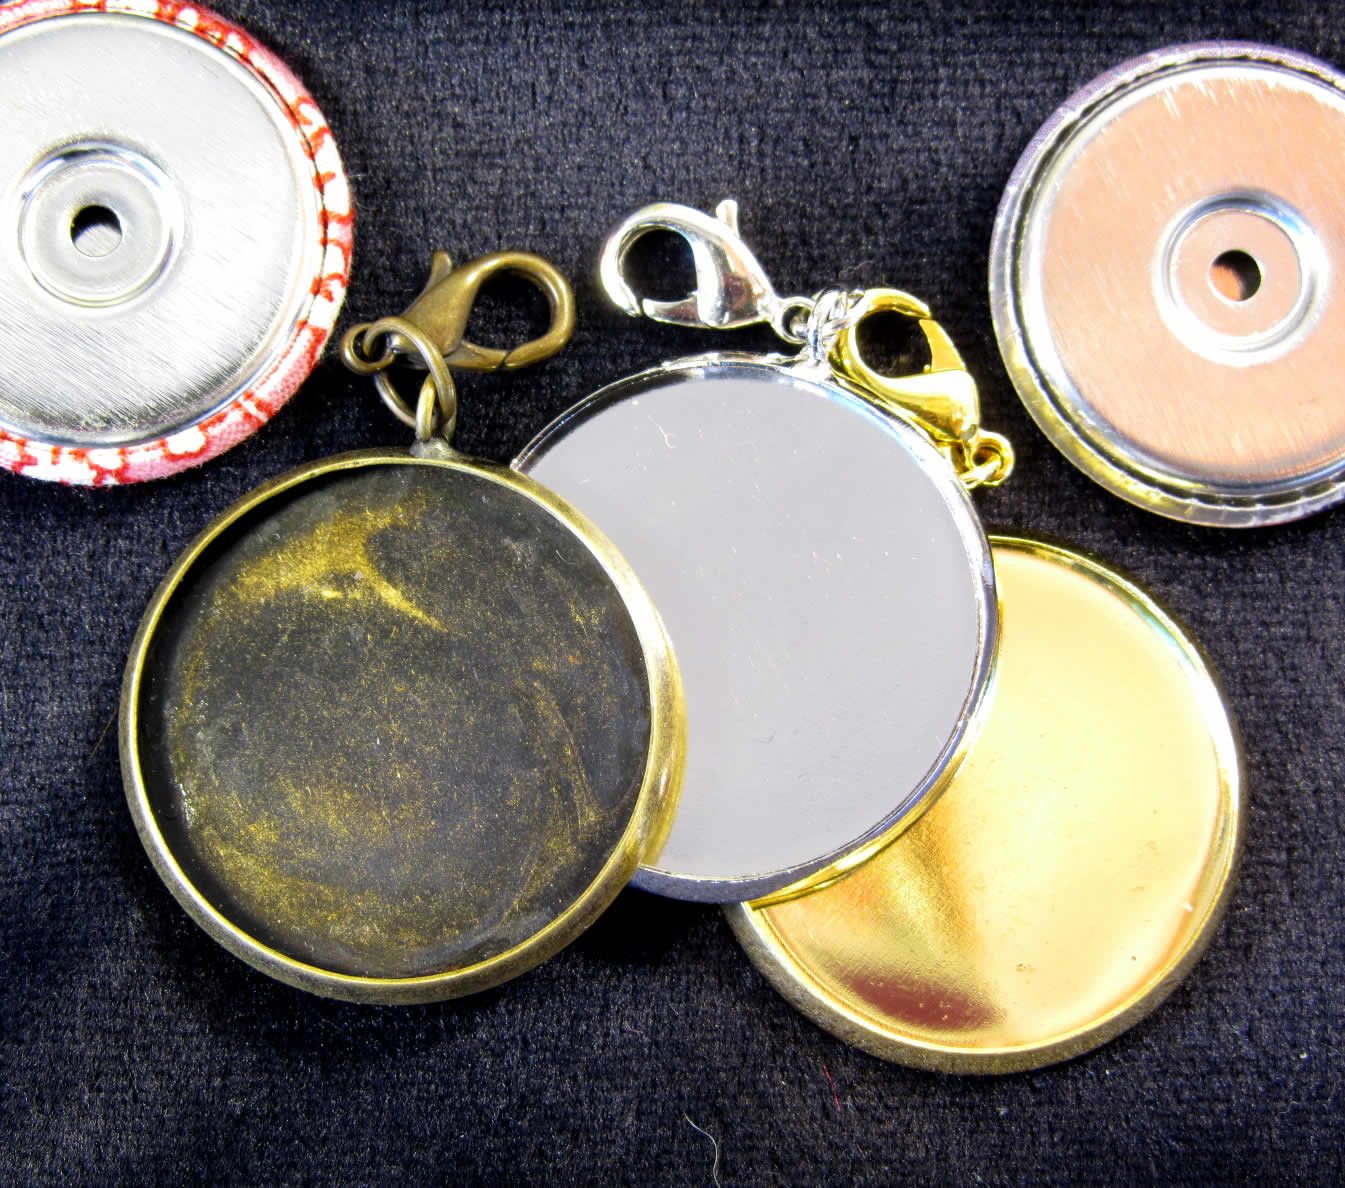 Simple and easy to make these Alond jewelry items on your Alond badge machine